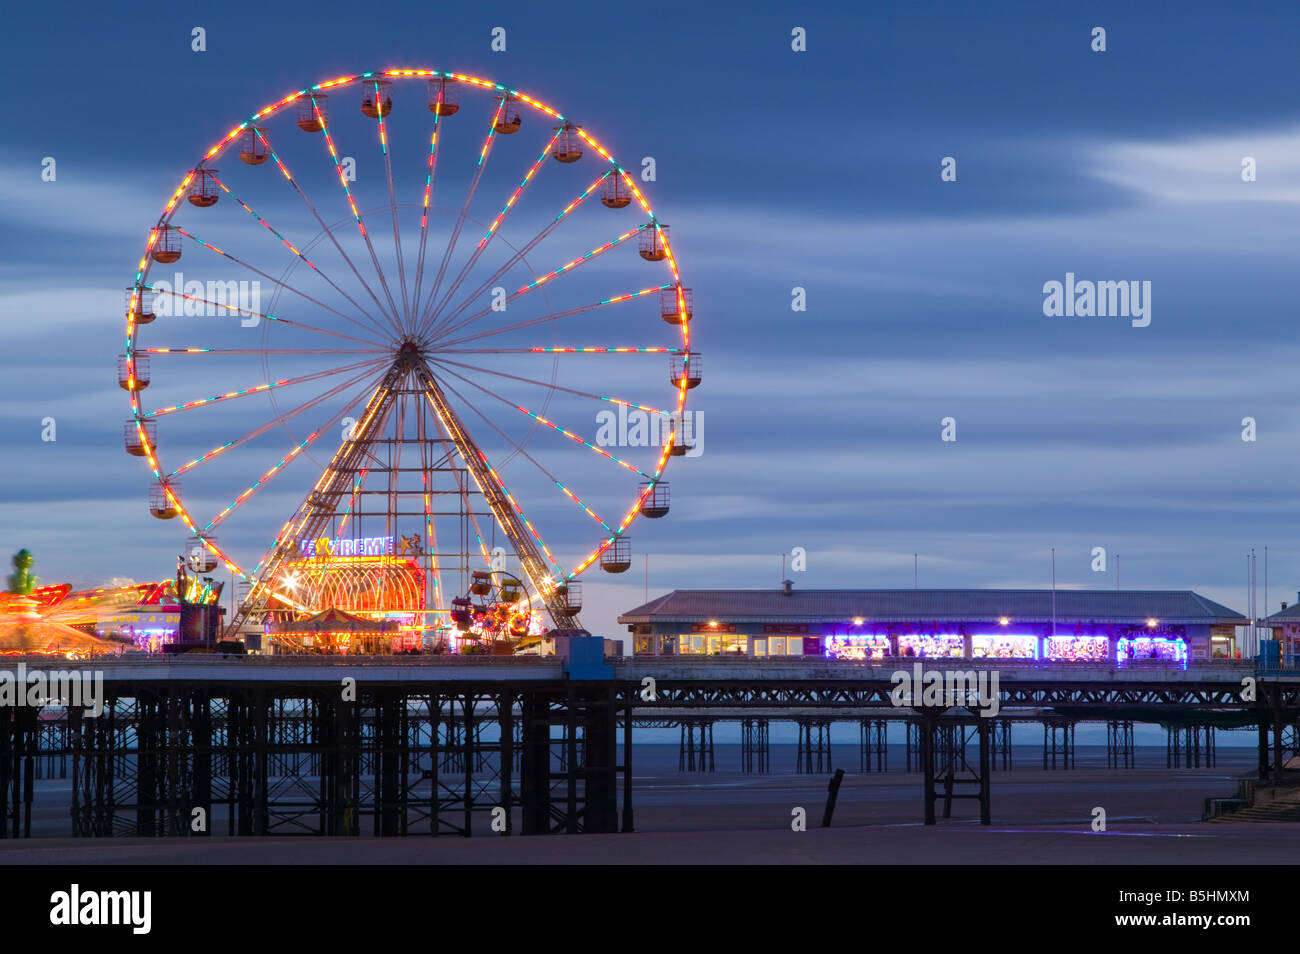 The Ferris Wheel on the Central Pier, Blackpool, Lancashire, England, UK. - Stock Image